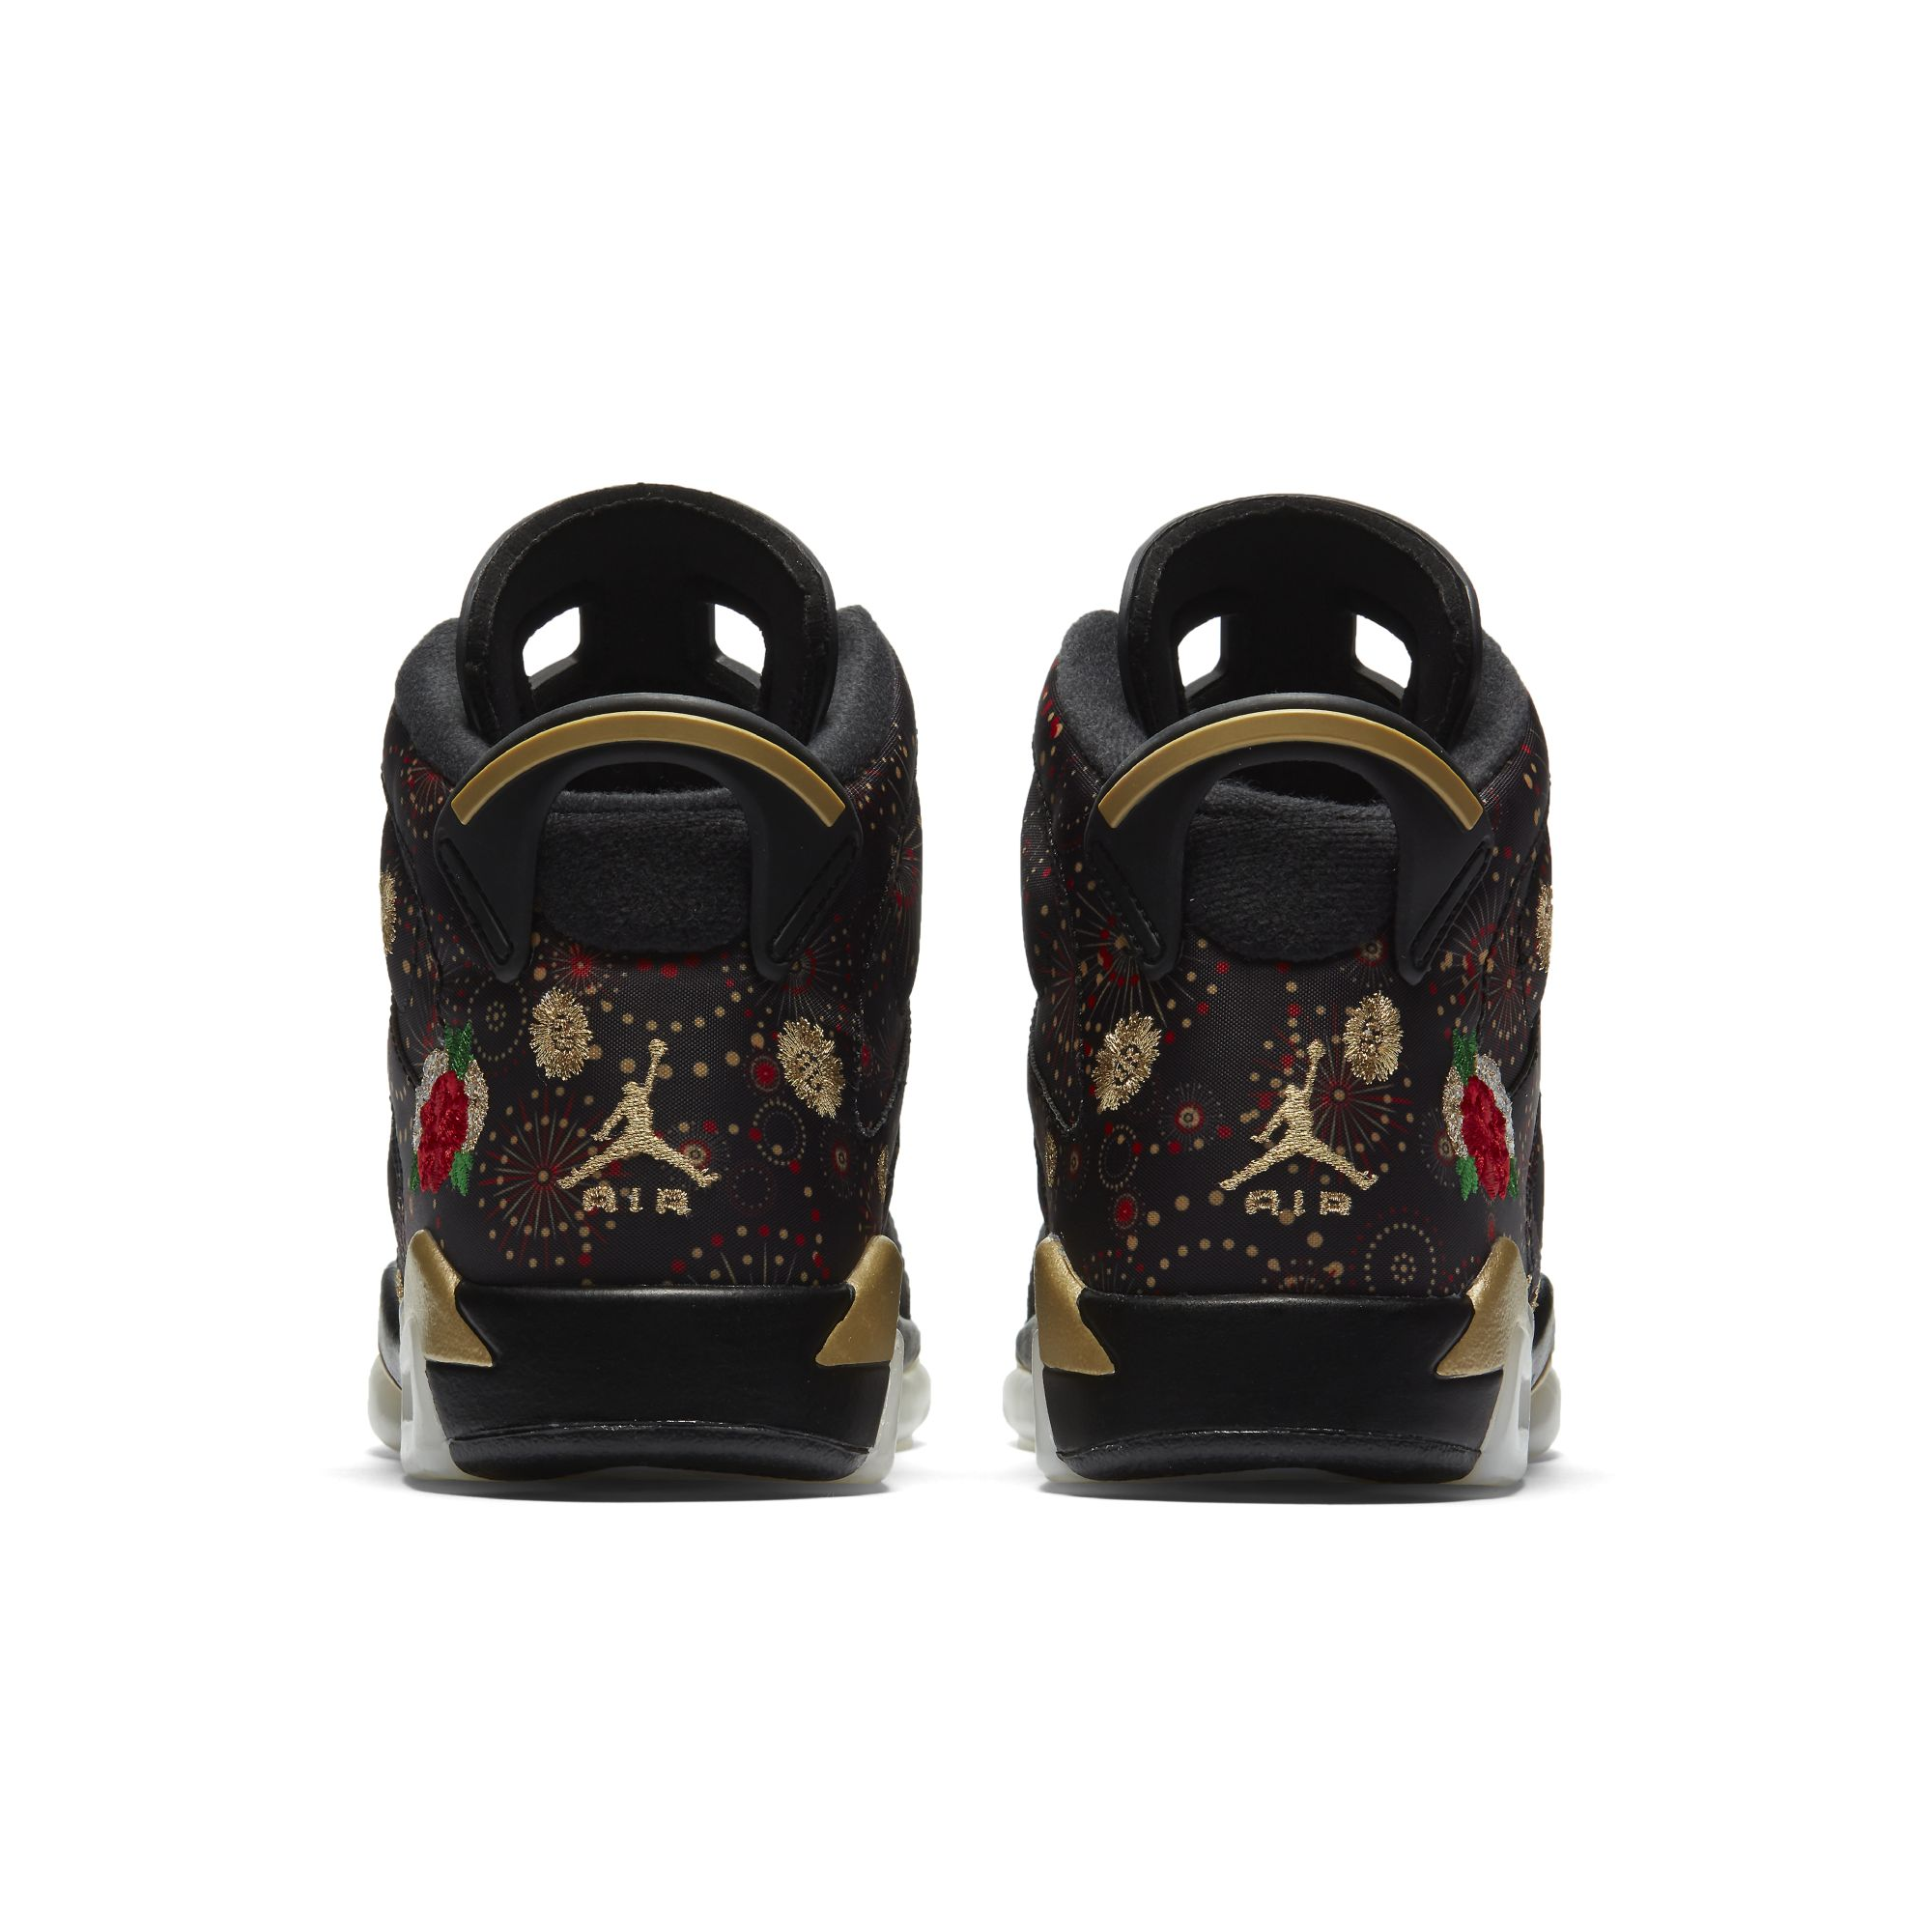 finest selection 6d6ab c3687 Here's an Official Look at the Air Jordan 6 'CNY' - WearTesters